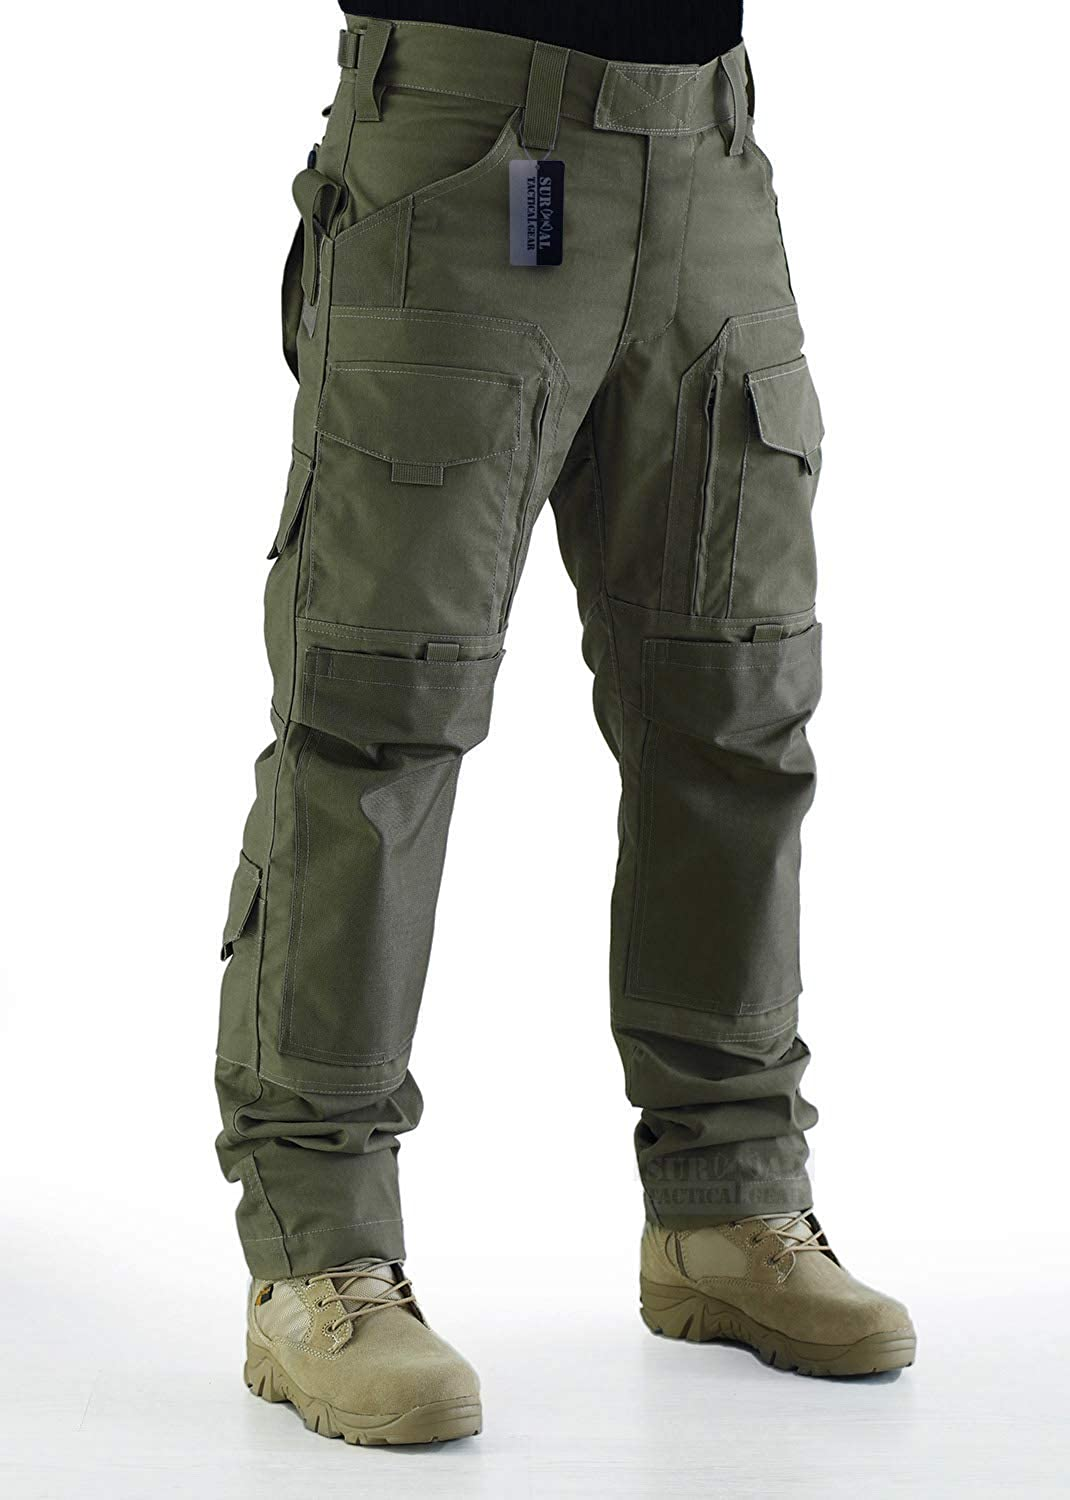 ZAPT Tactical Pants Molle Ripstop C Army Hunting El Paso Mall Combat Trousers Indianapolis Mall